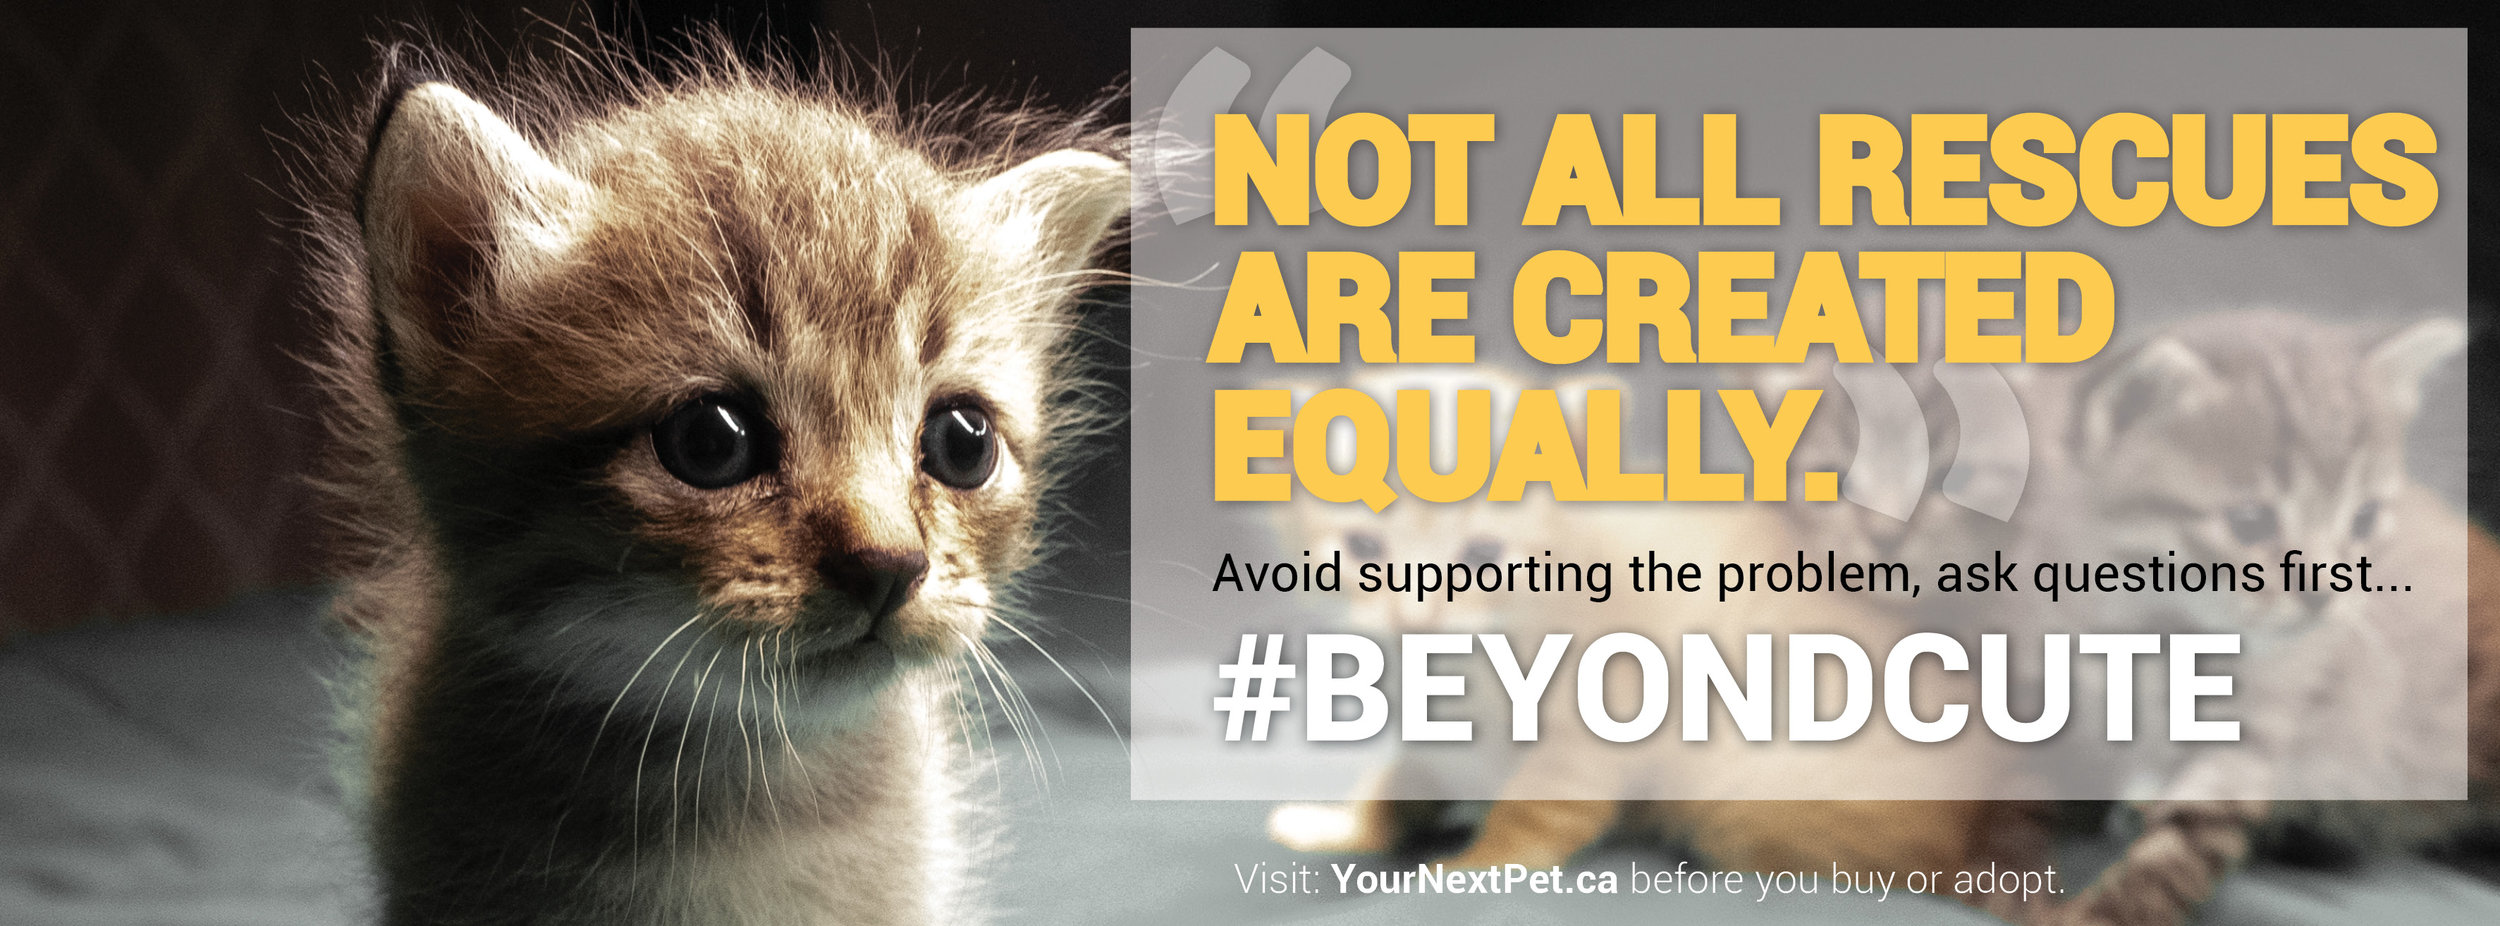 #BeyondCute - Facebook Banner - Not all rescues are created equally - BLOCKING CAT OPTION 2019.jpg